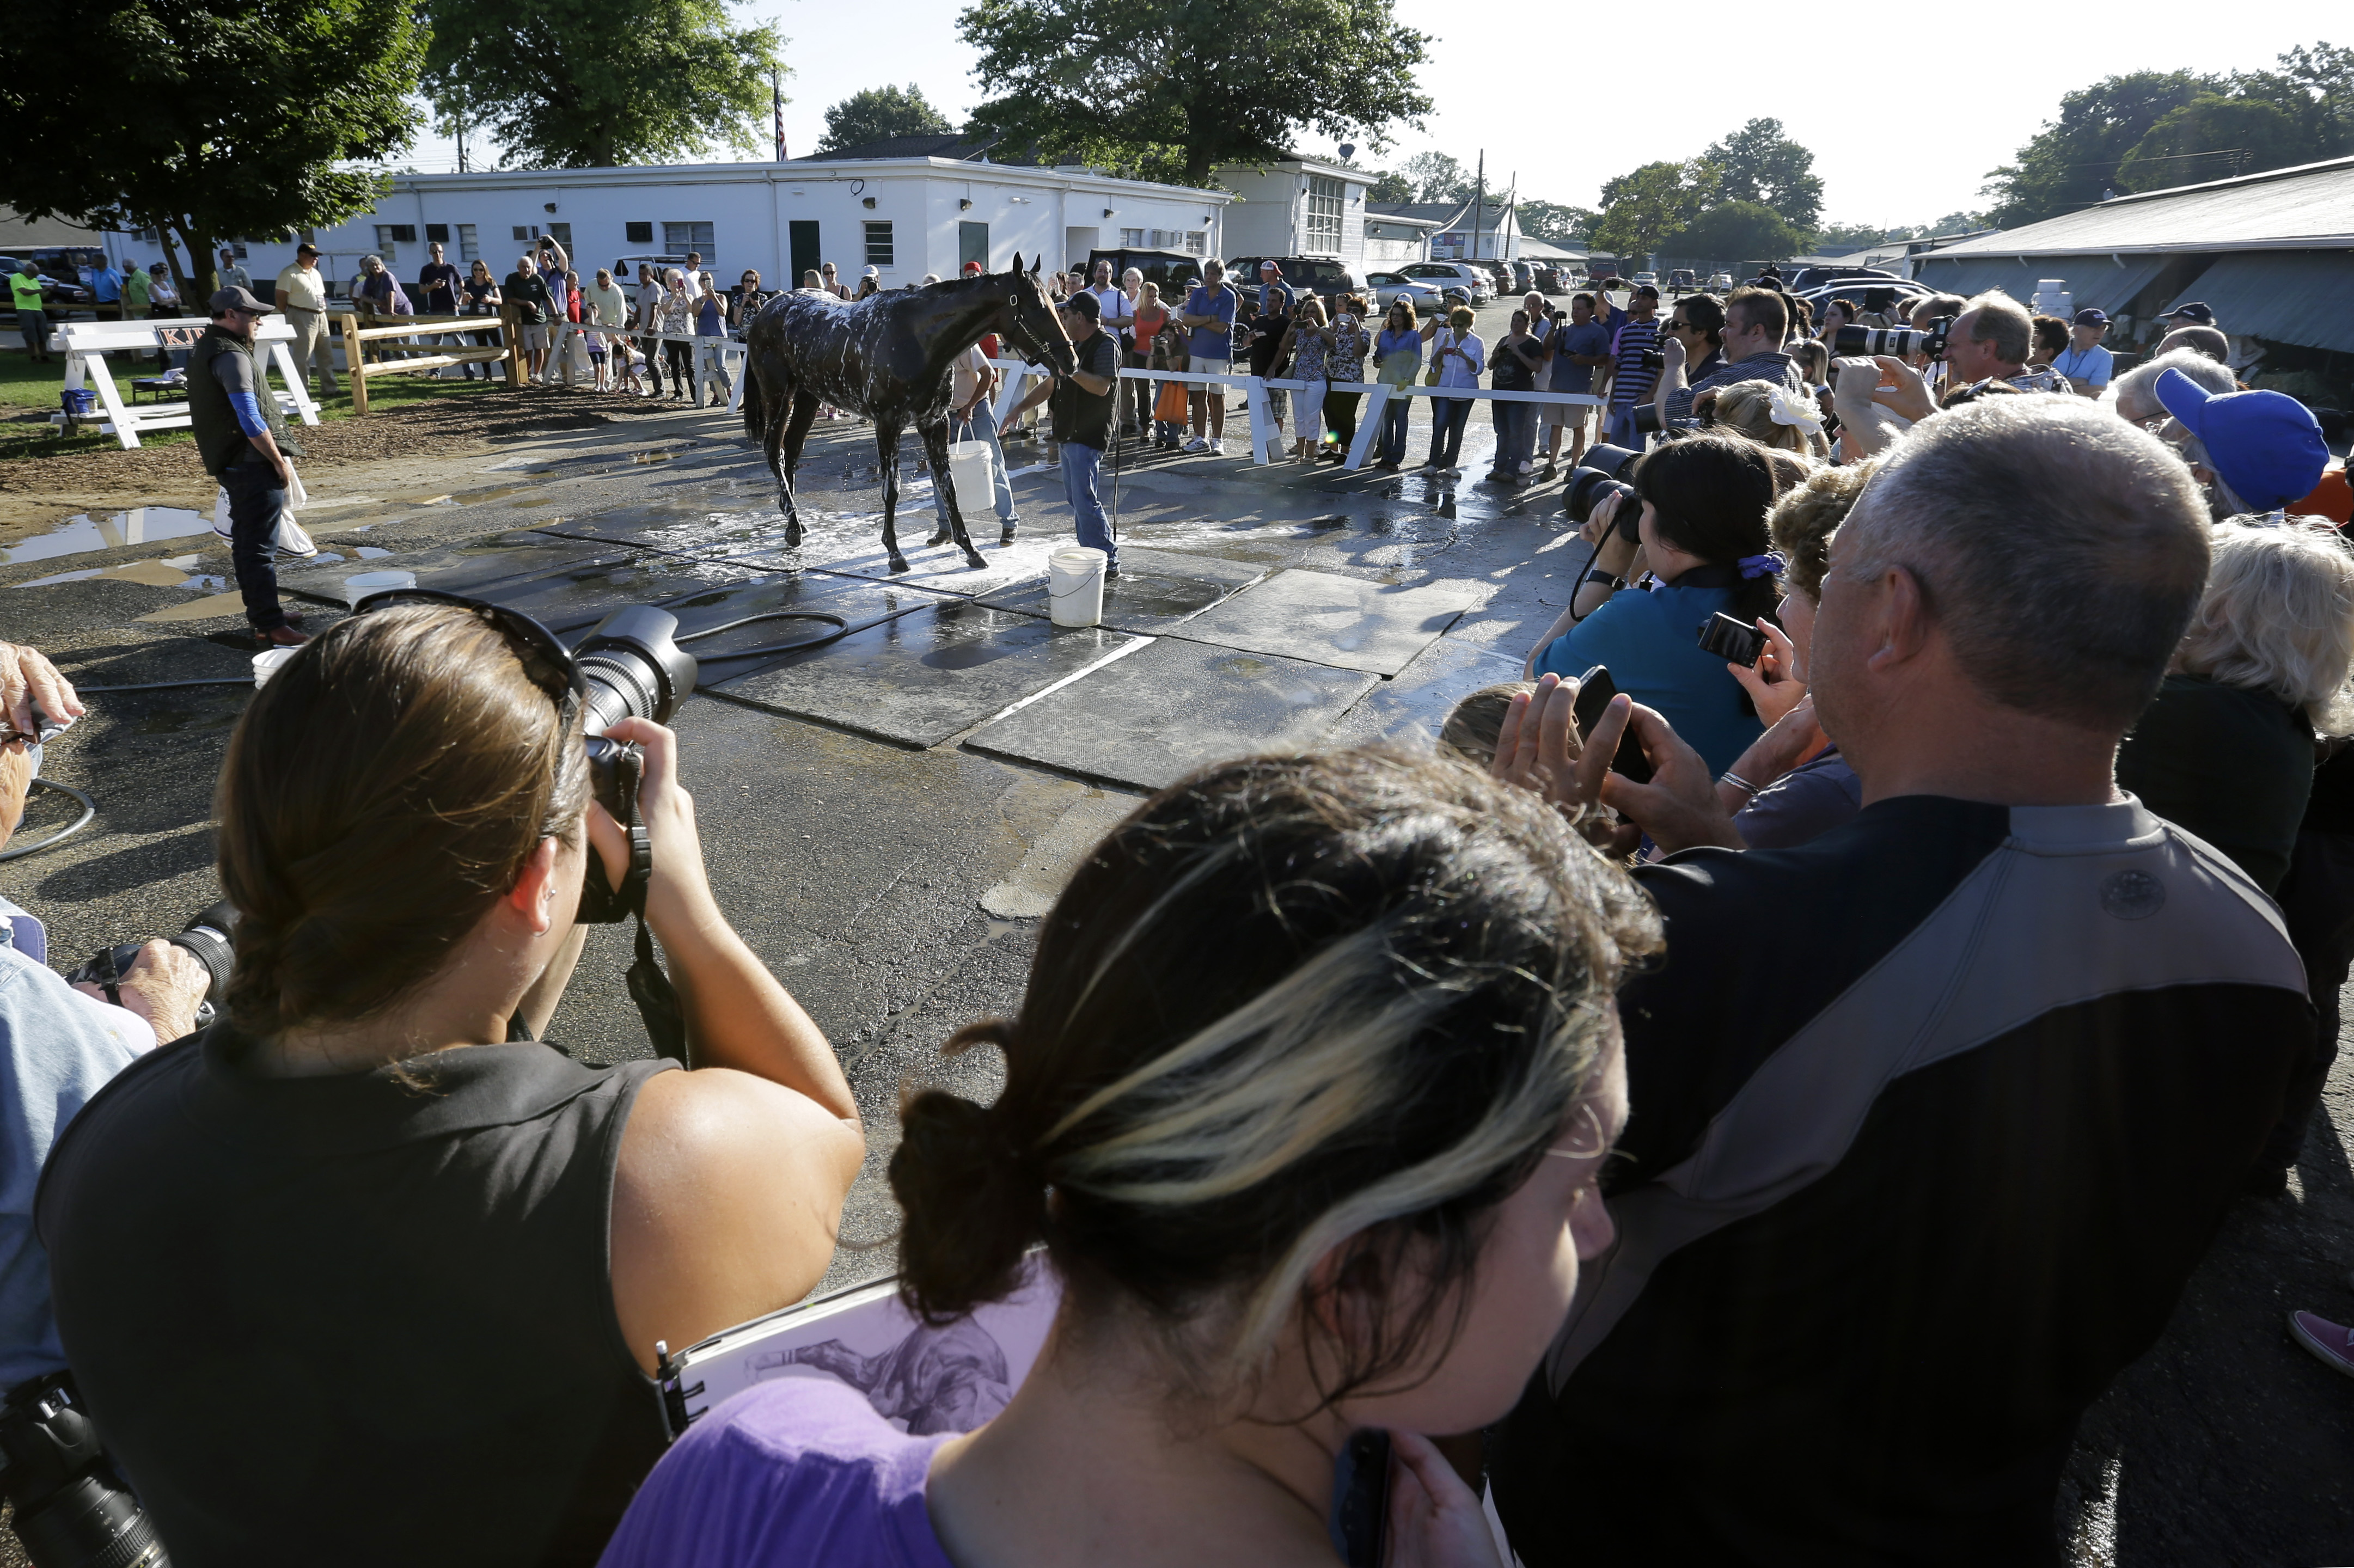 A large crowd gathers as Triple Crown winner American Pharoah gets a bath after a workout at Monmouth Park in Oceanport, N.J., Friday, July 31, 2015. American Pharoah is preparing for Sunday's running of the Haskell Invitational horse race. (AP Photo/Mel